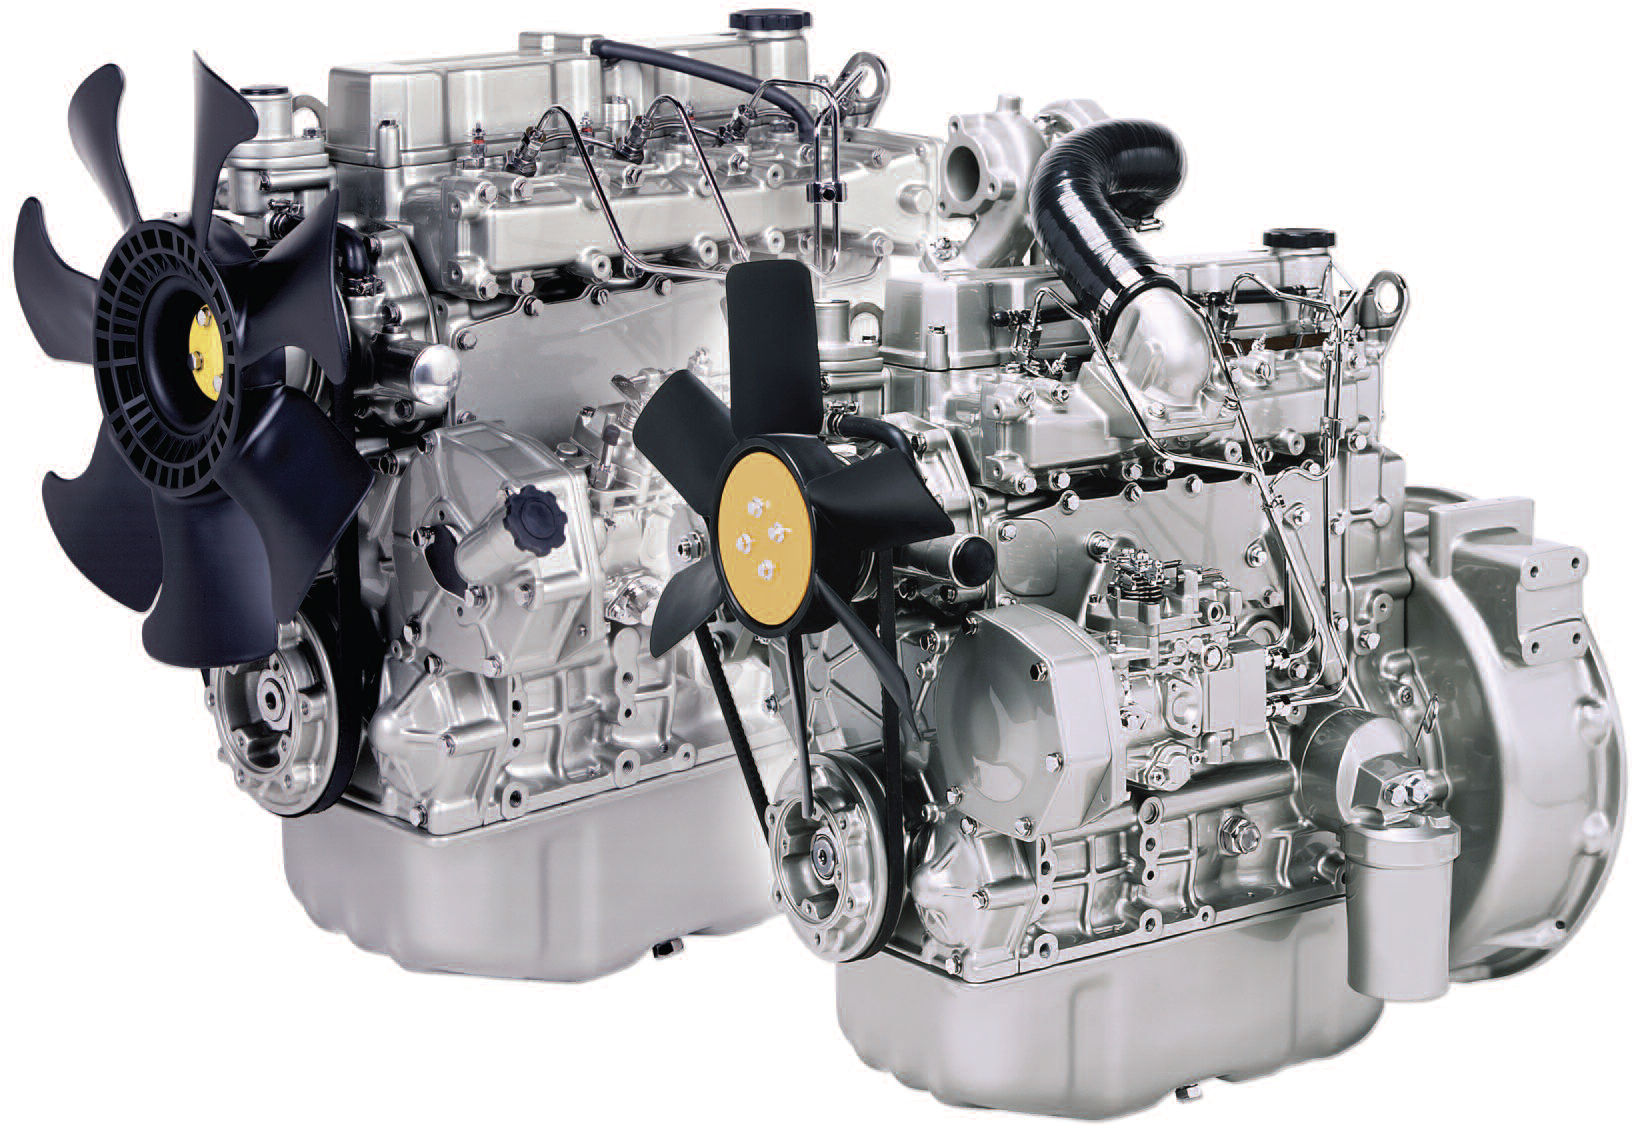 The Detroit Diesel - the iconic American high speed two Pictures of diesel engine